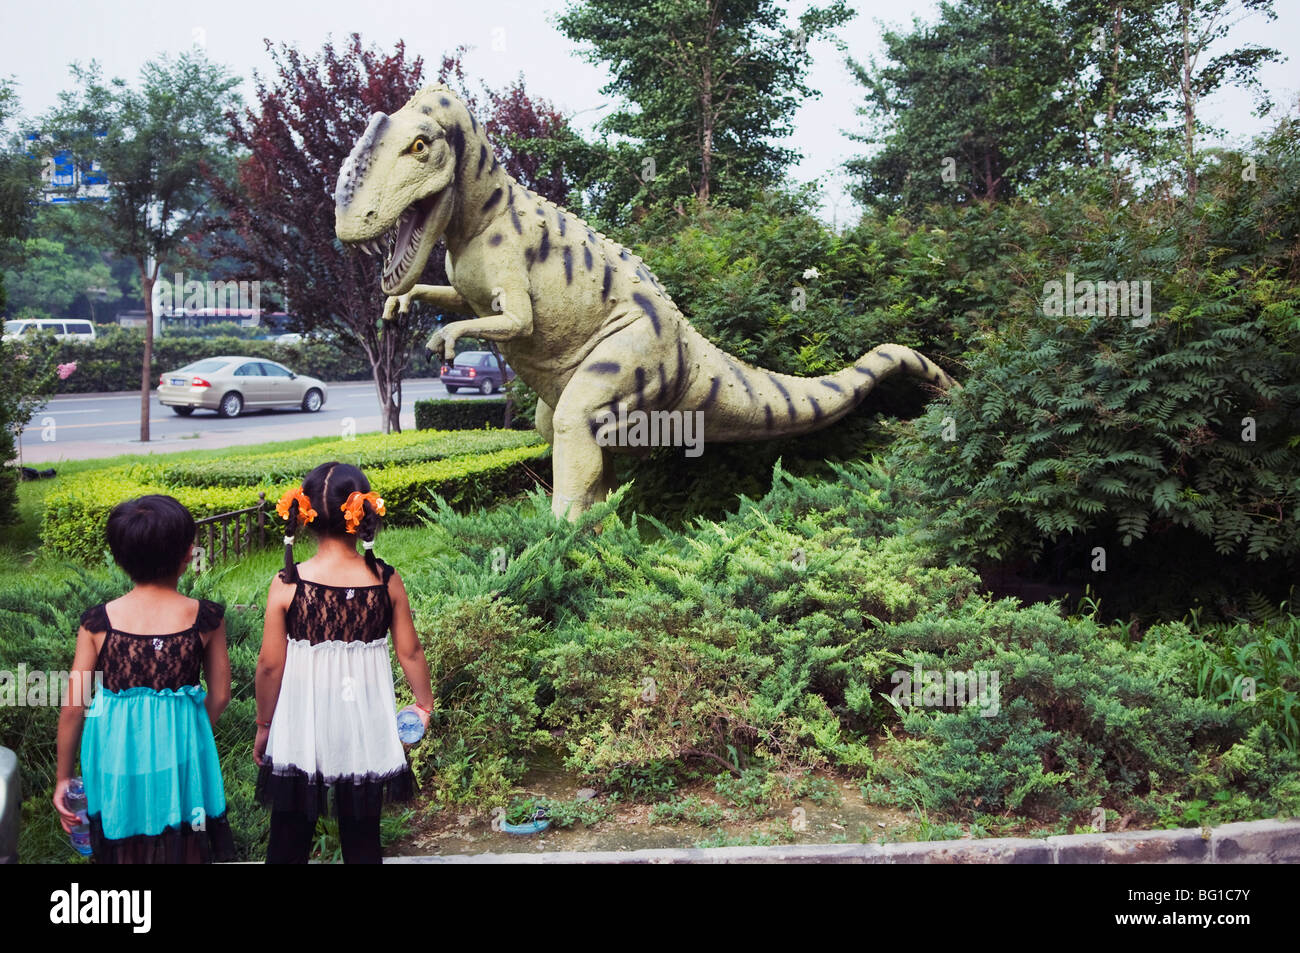 Dinosaur outside the Paleozoological Museum of China, Beijing, China, Asia - Stock Image